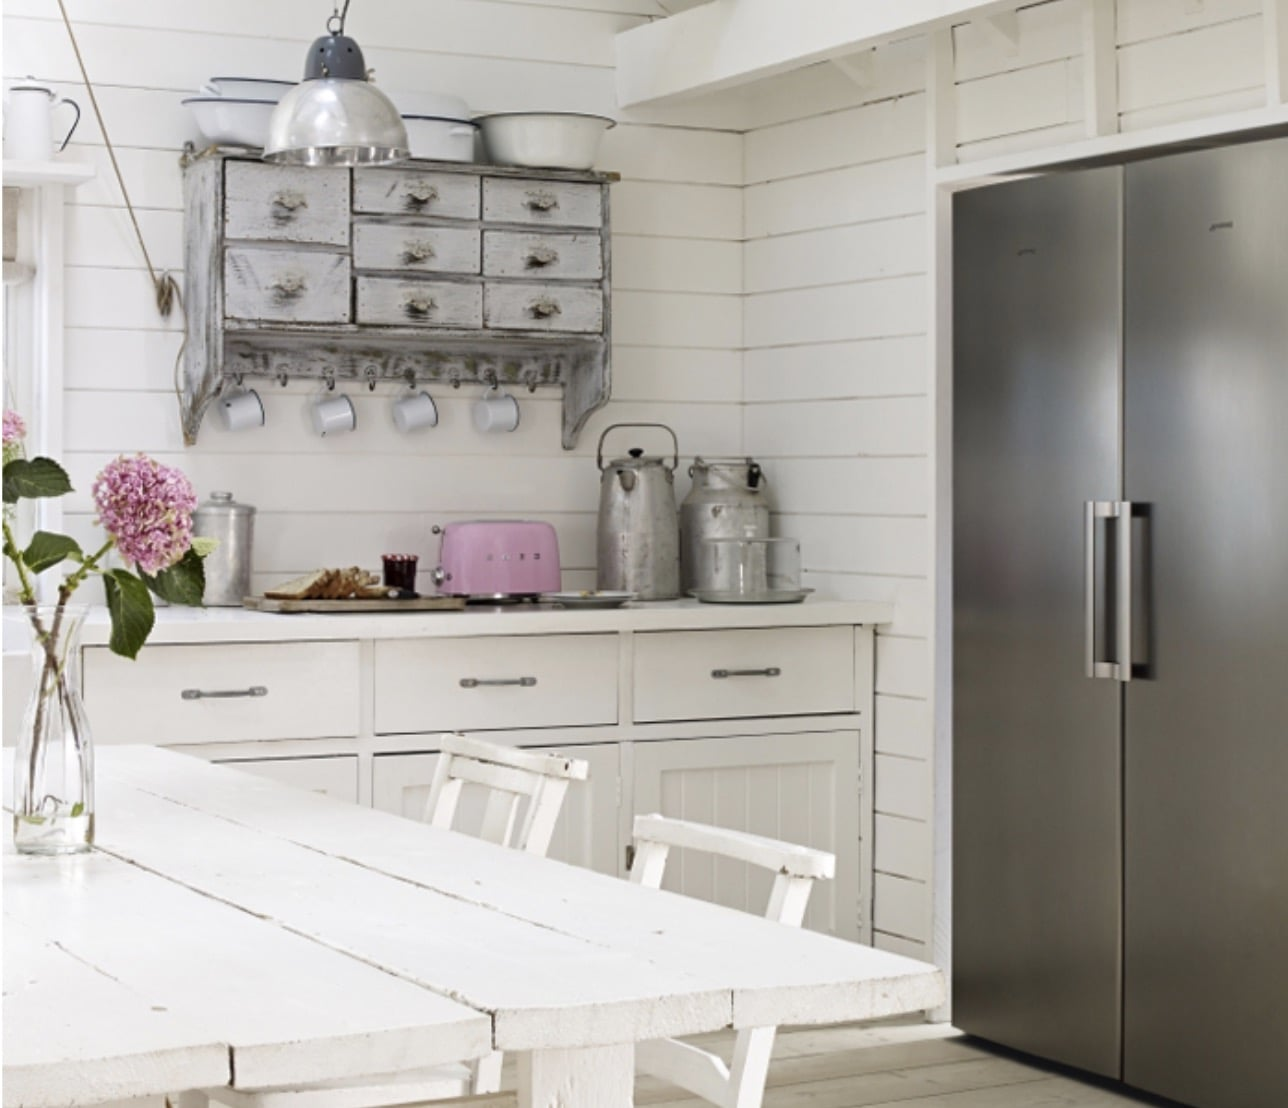 Country Kitchen Pictures 2019: Kitchen Trends 2019: Country Style • West Bridgford Wire